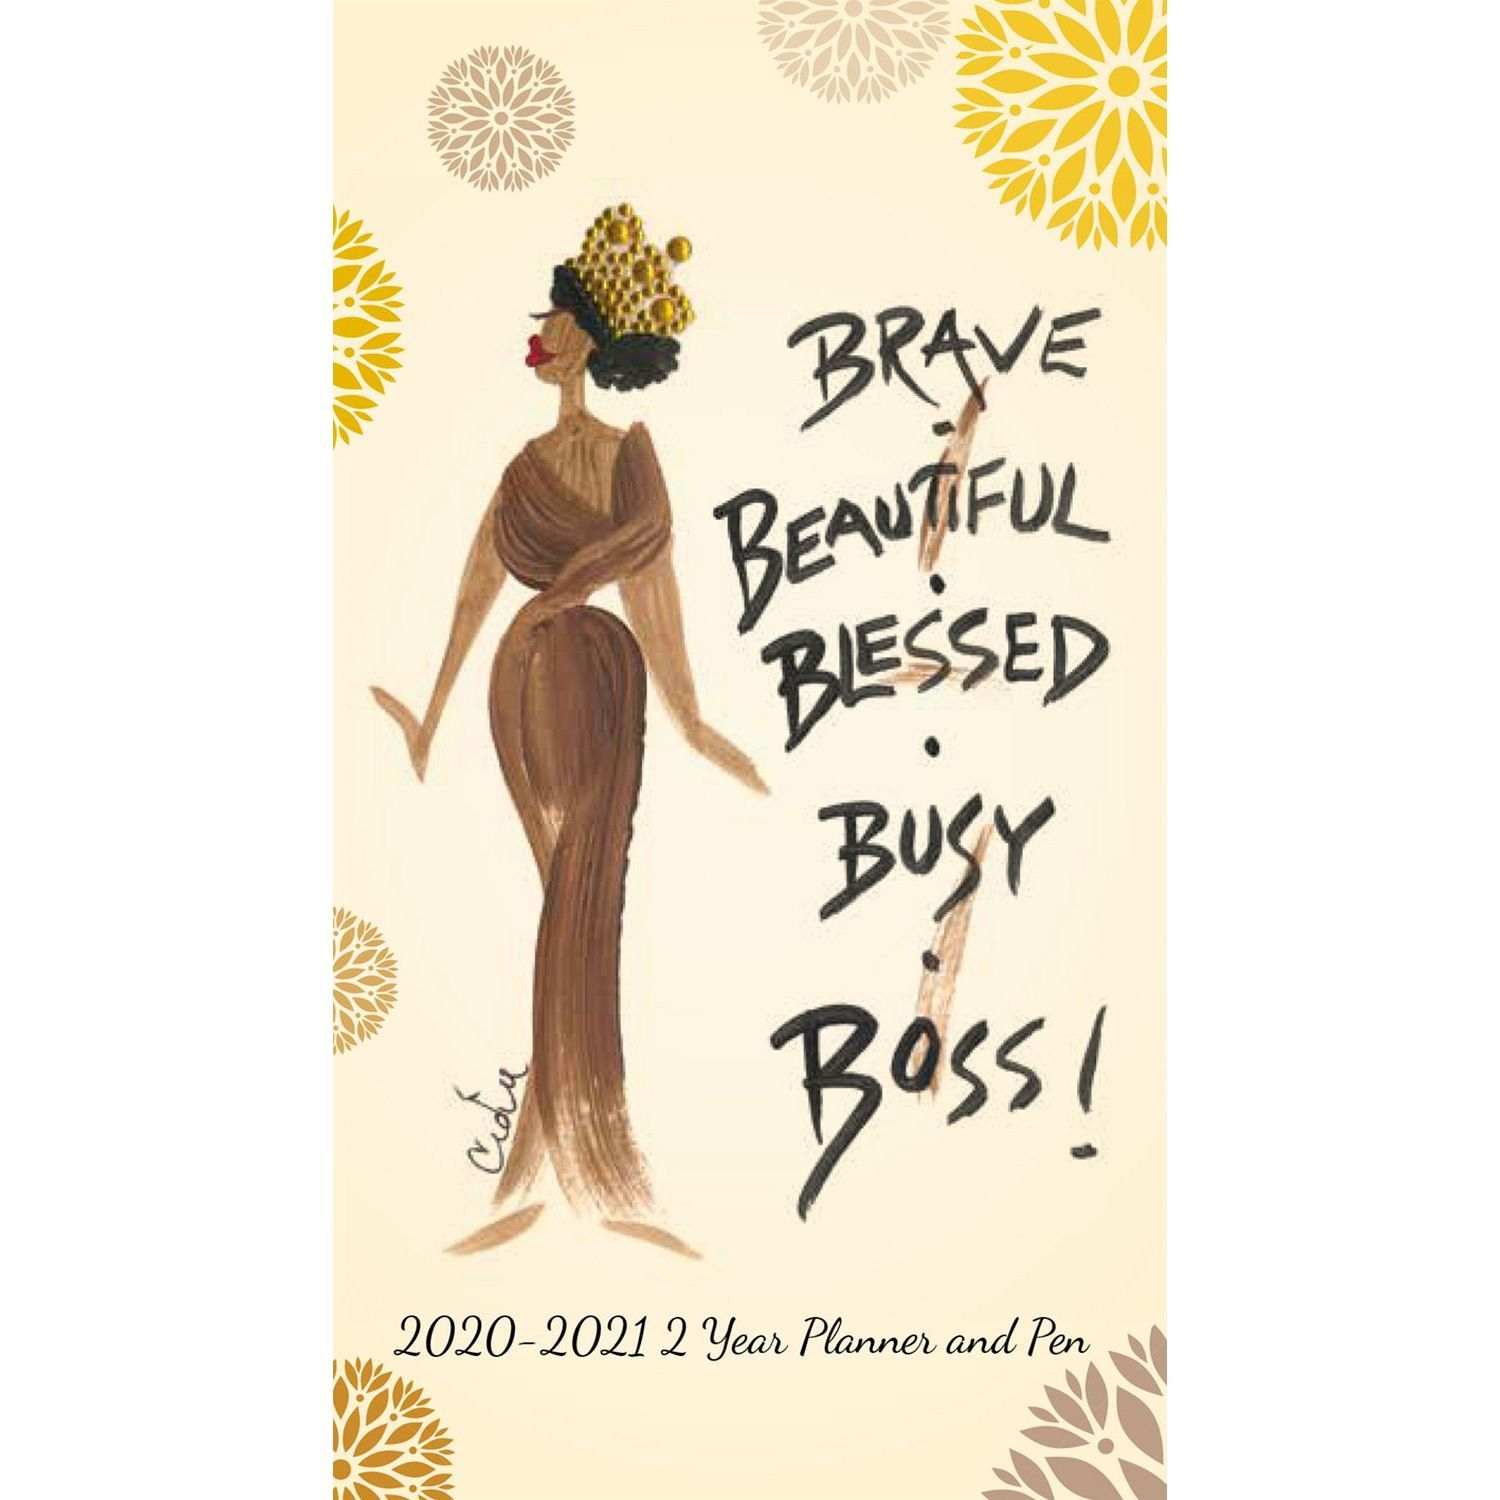 Brave & Blessed: 2020-2021 Two Year African American Checkbook Planner by Cidne Wallace